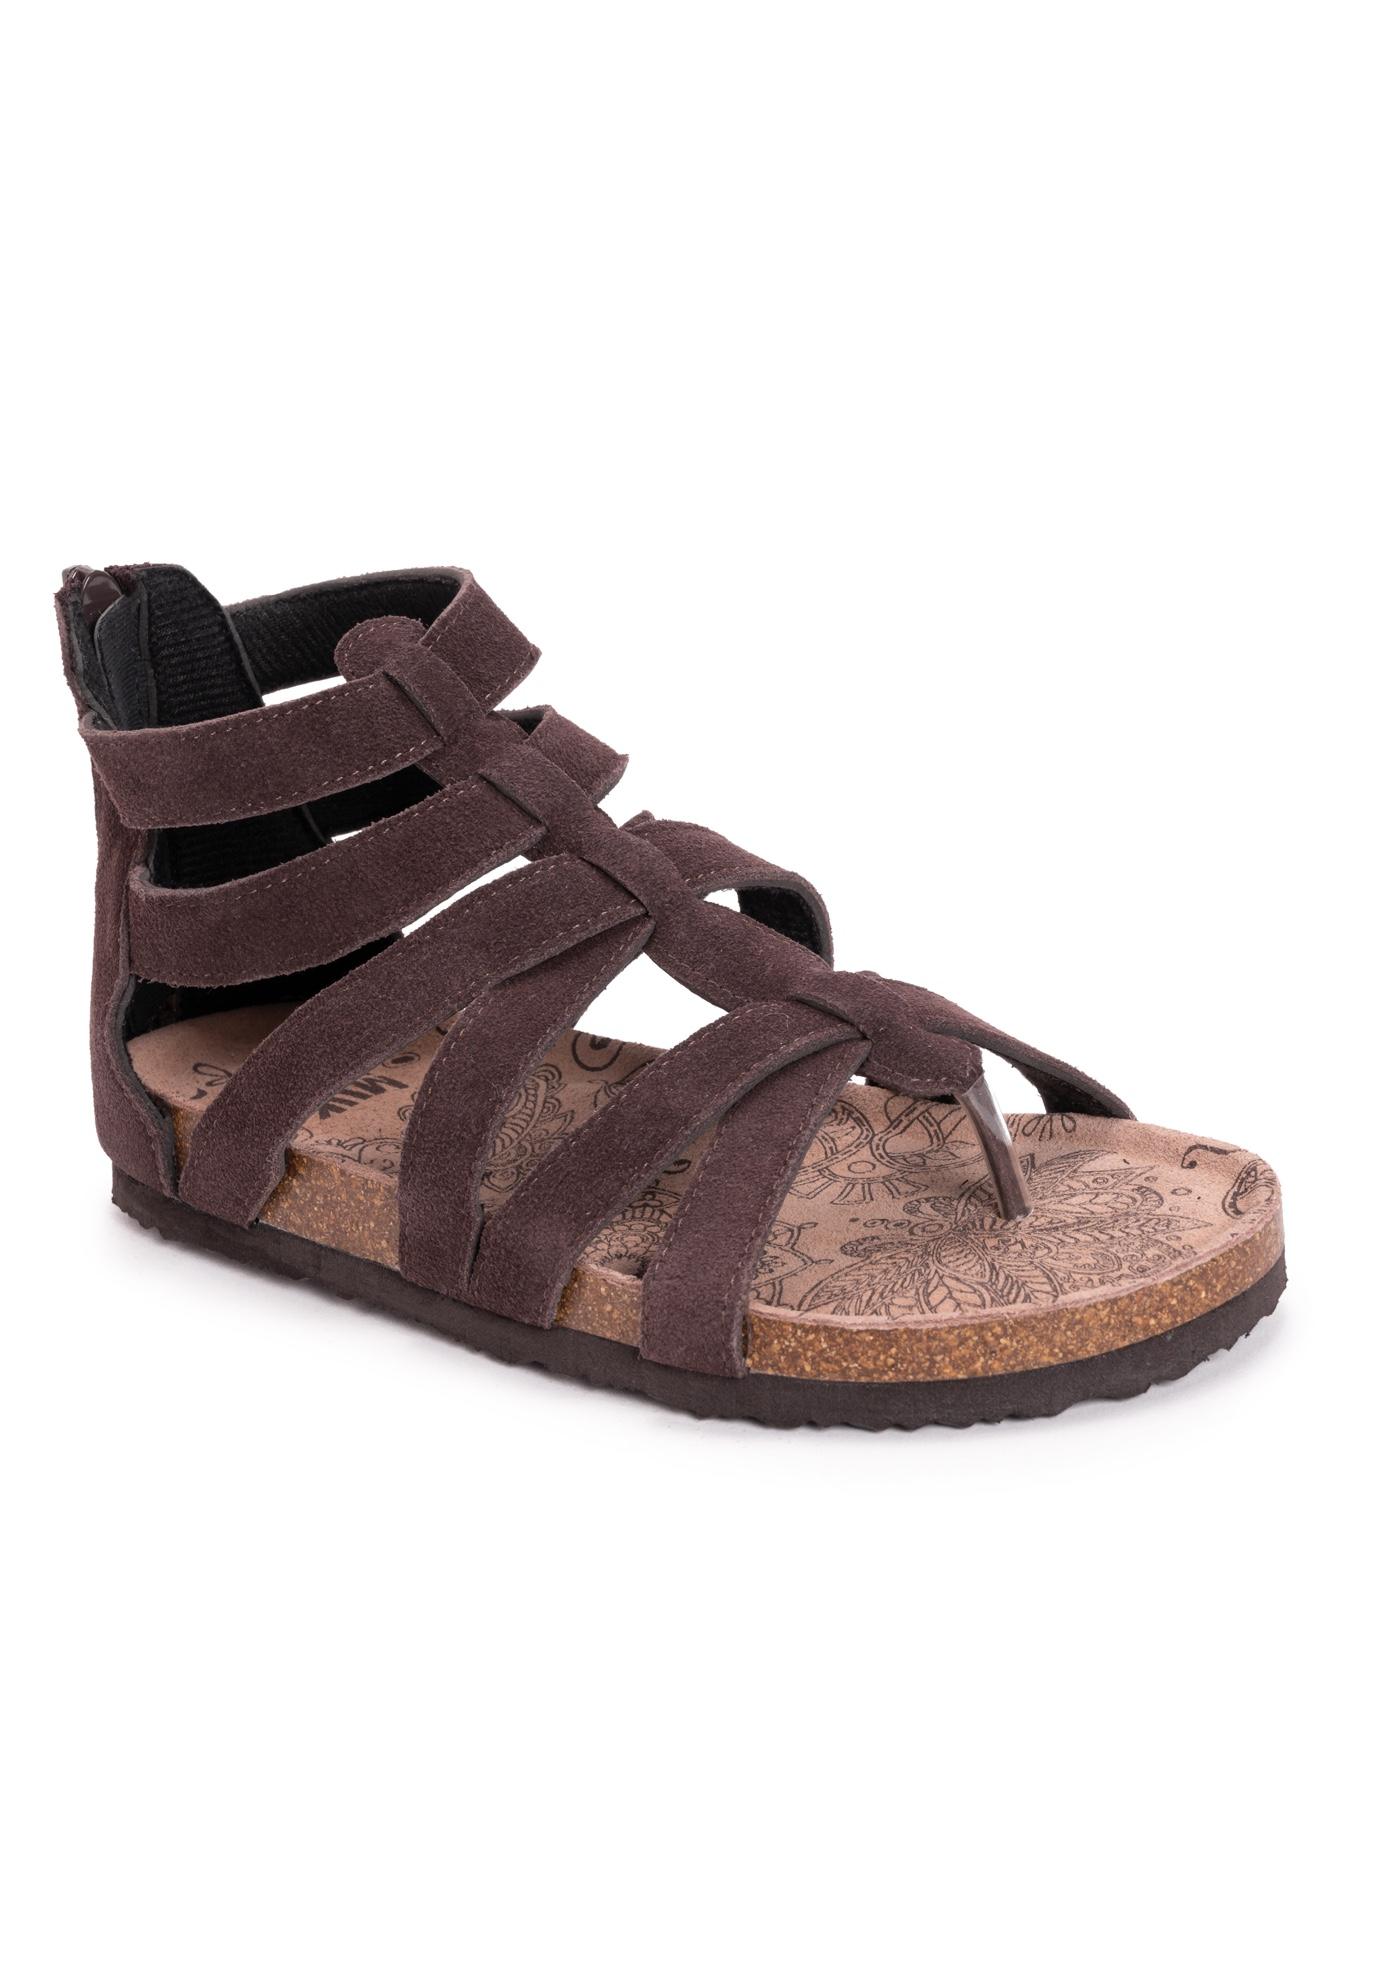 Kinley Sandals by MUK LUKS®,